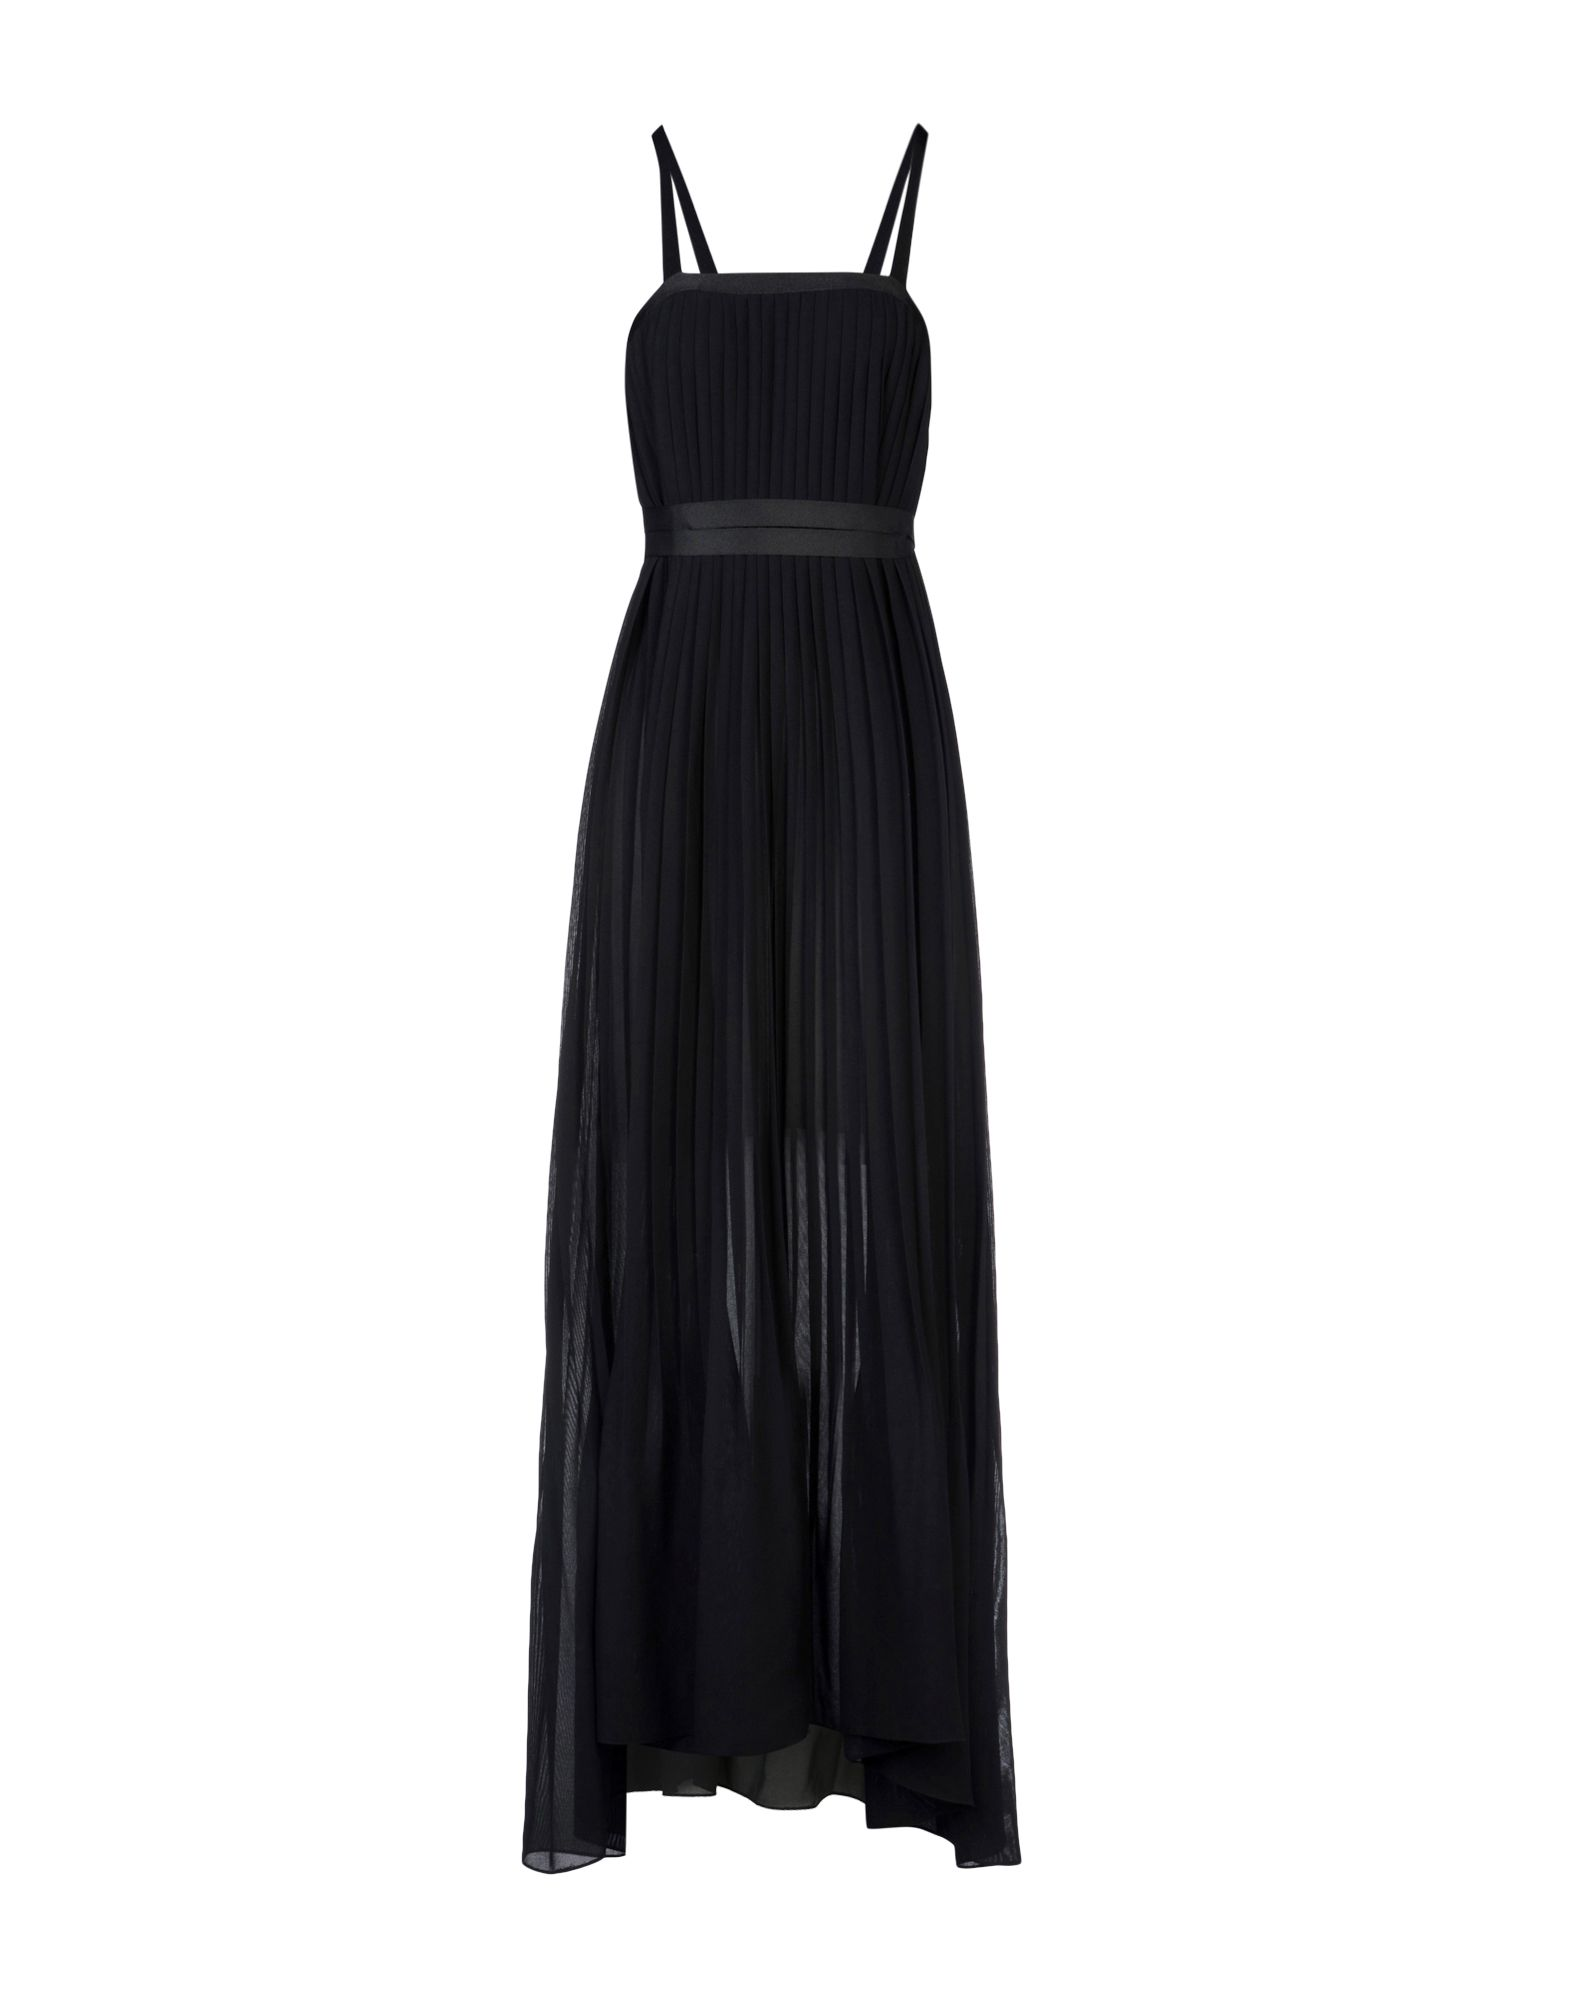 BY. BONNIE YOUNG Long Dress in Black